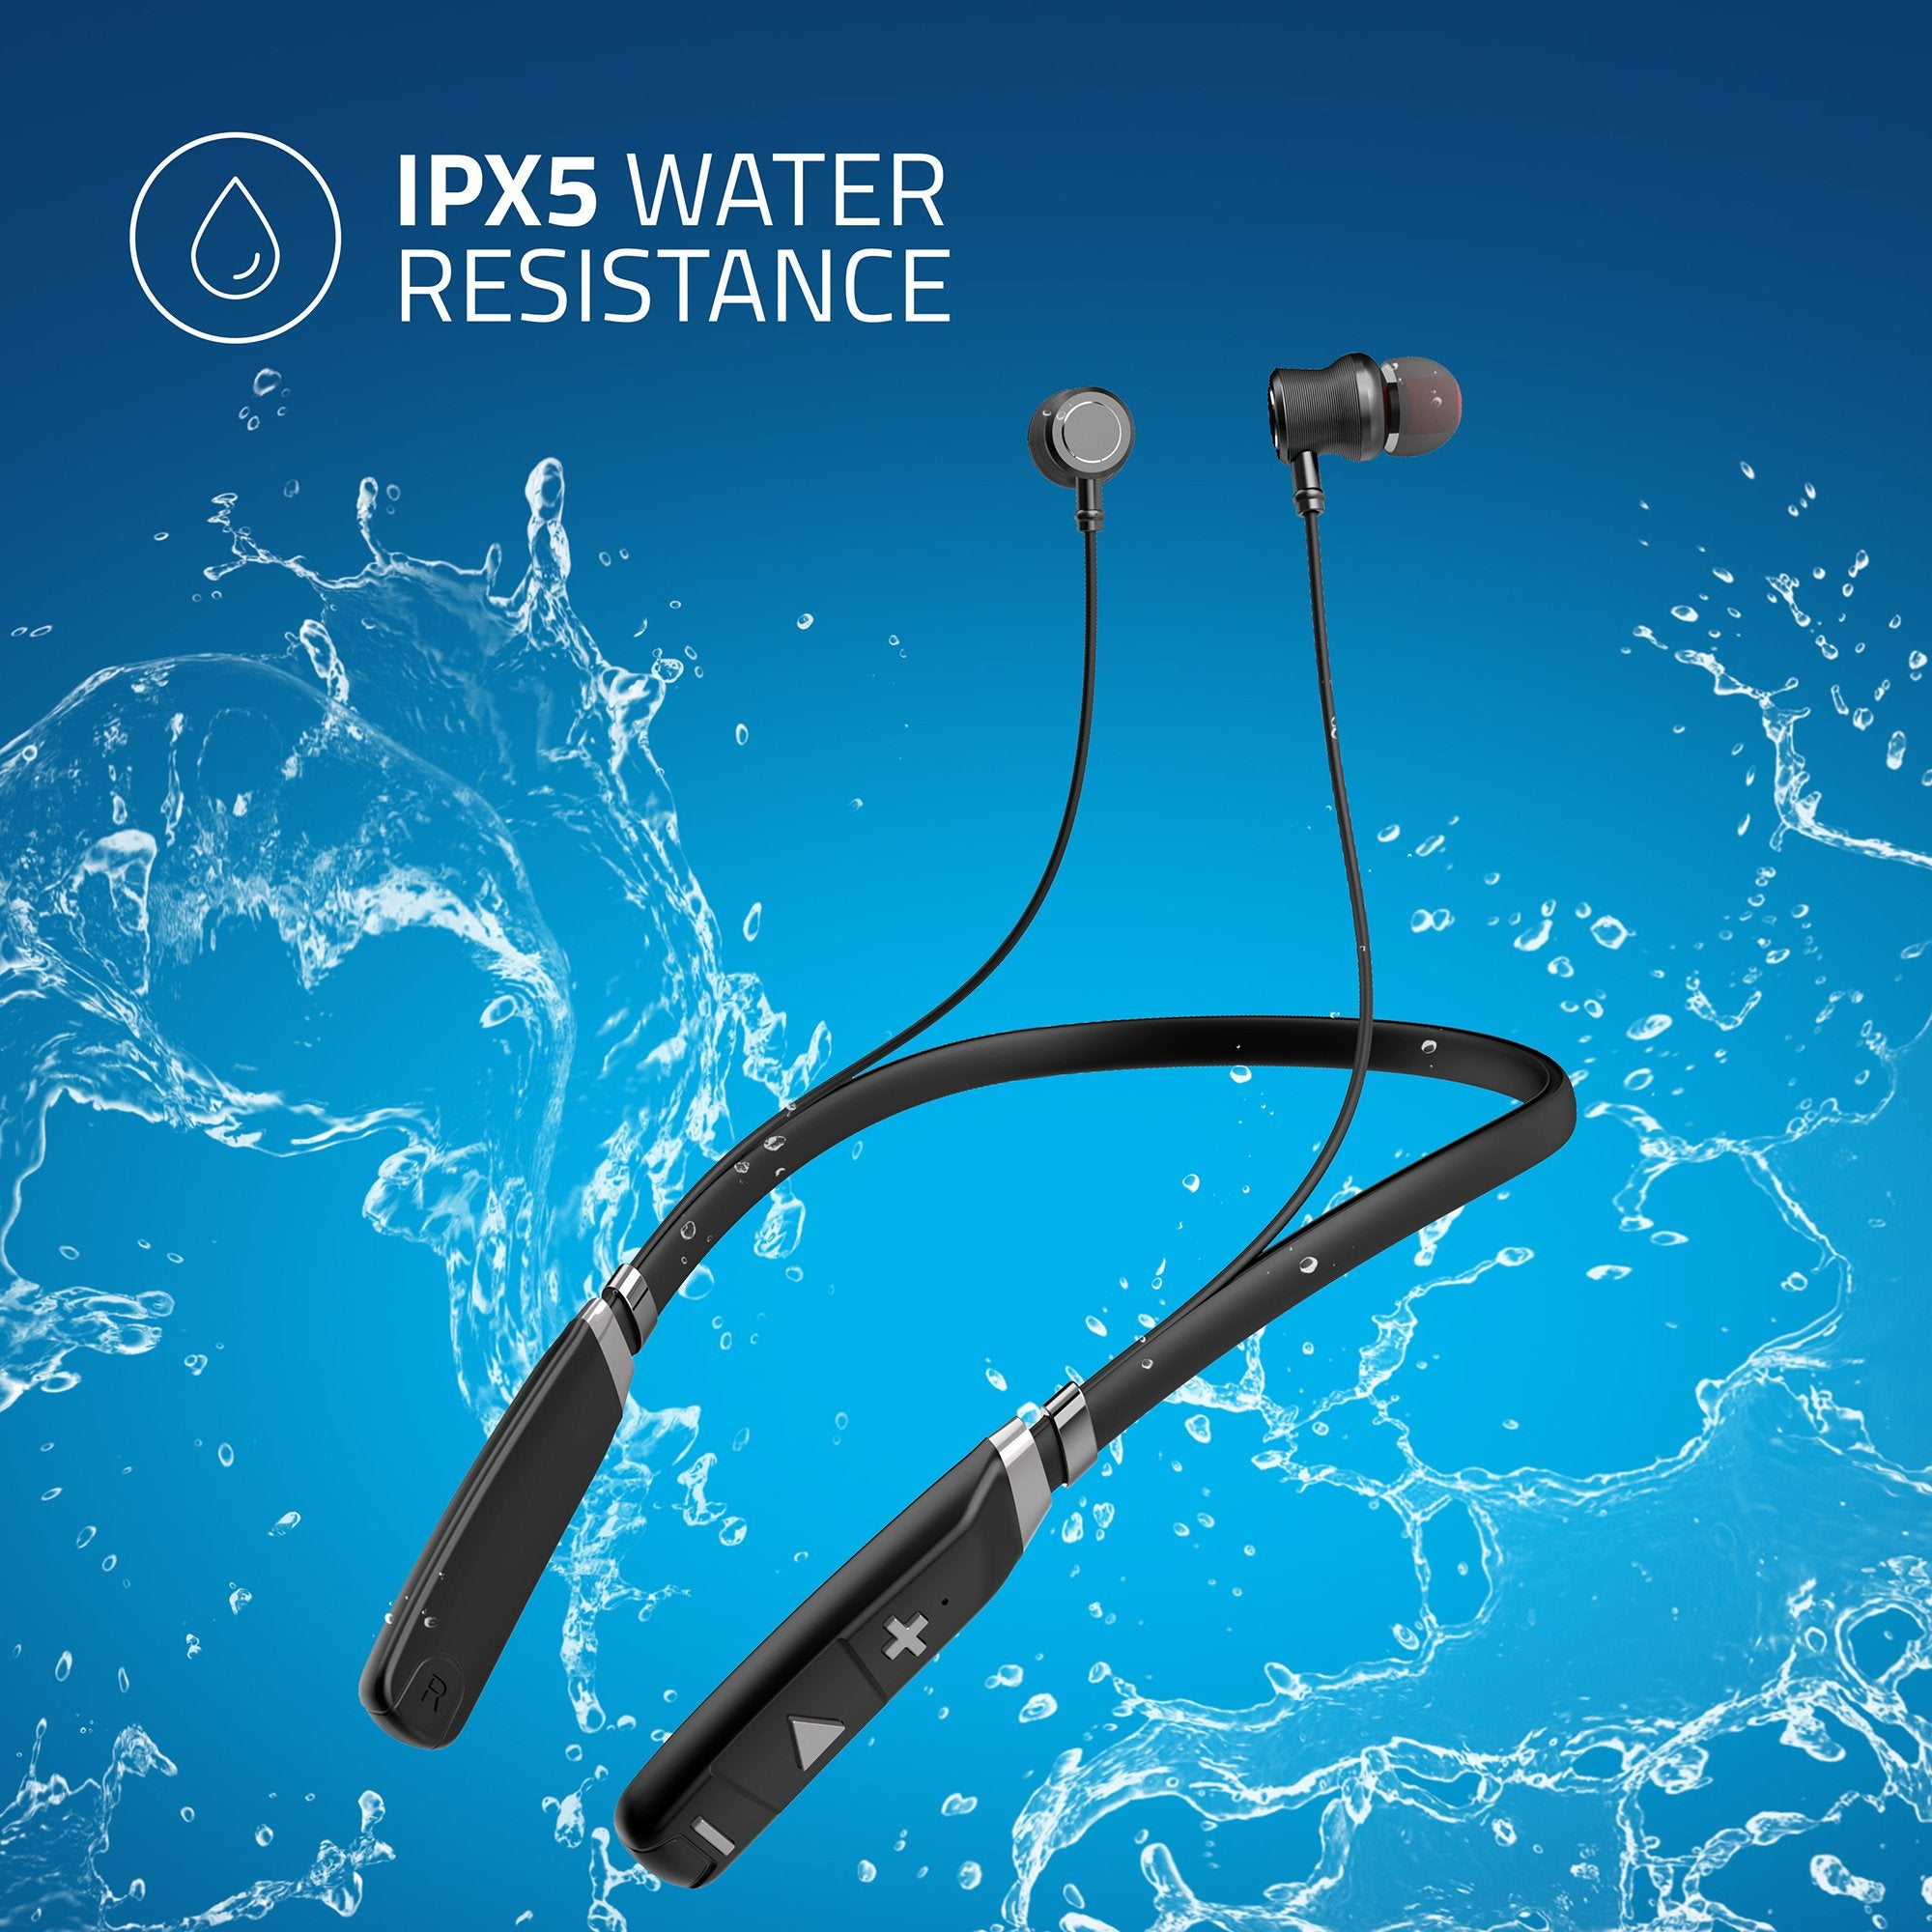 Artis BE910M Sports Bluetooth Wireless Neckband Earphone (Black) - IPX5 Certified For Water Resistance